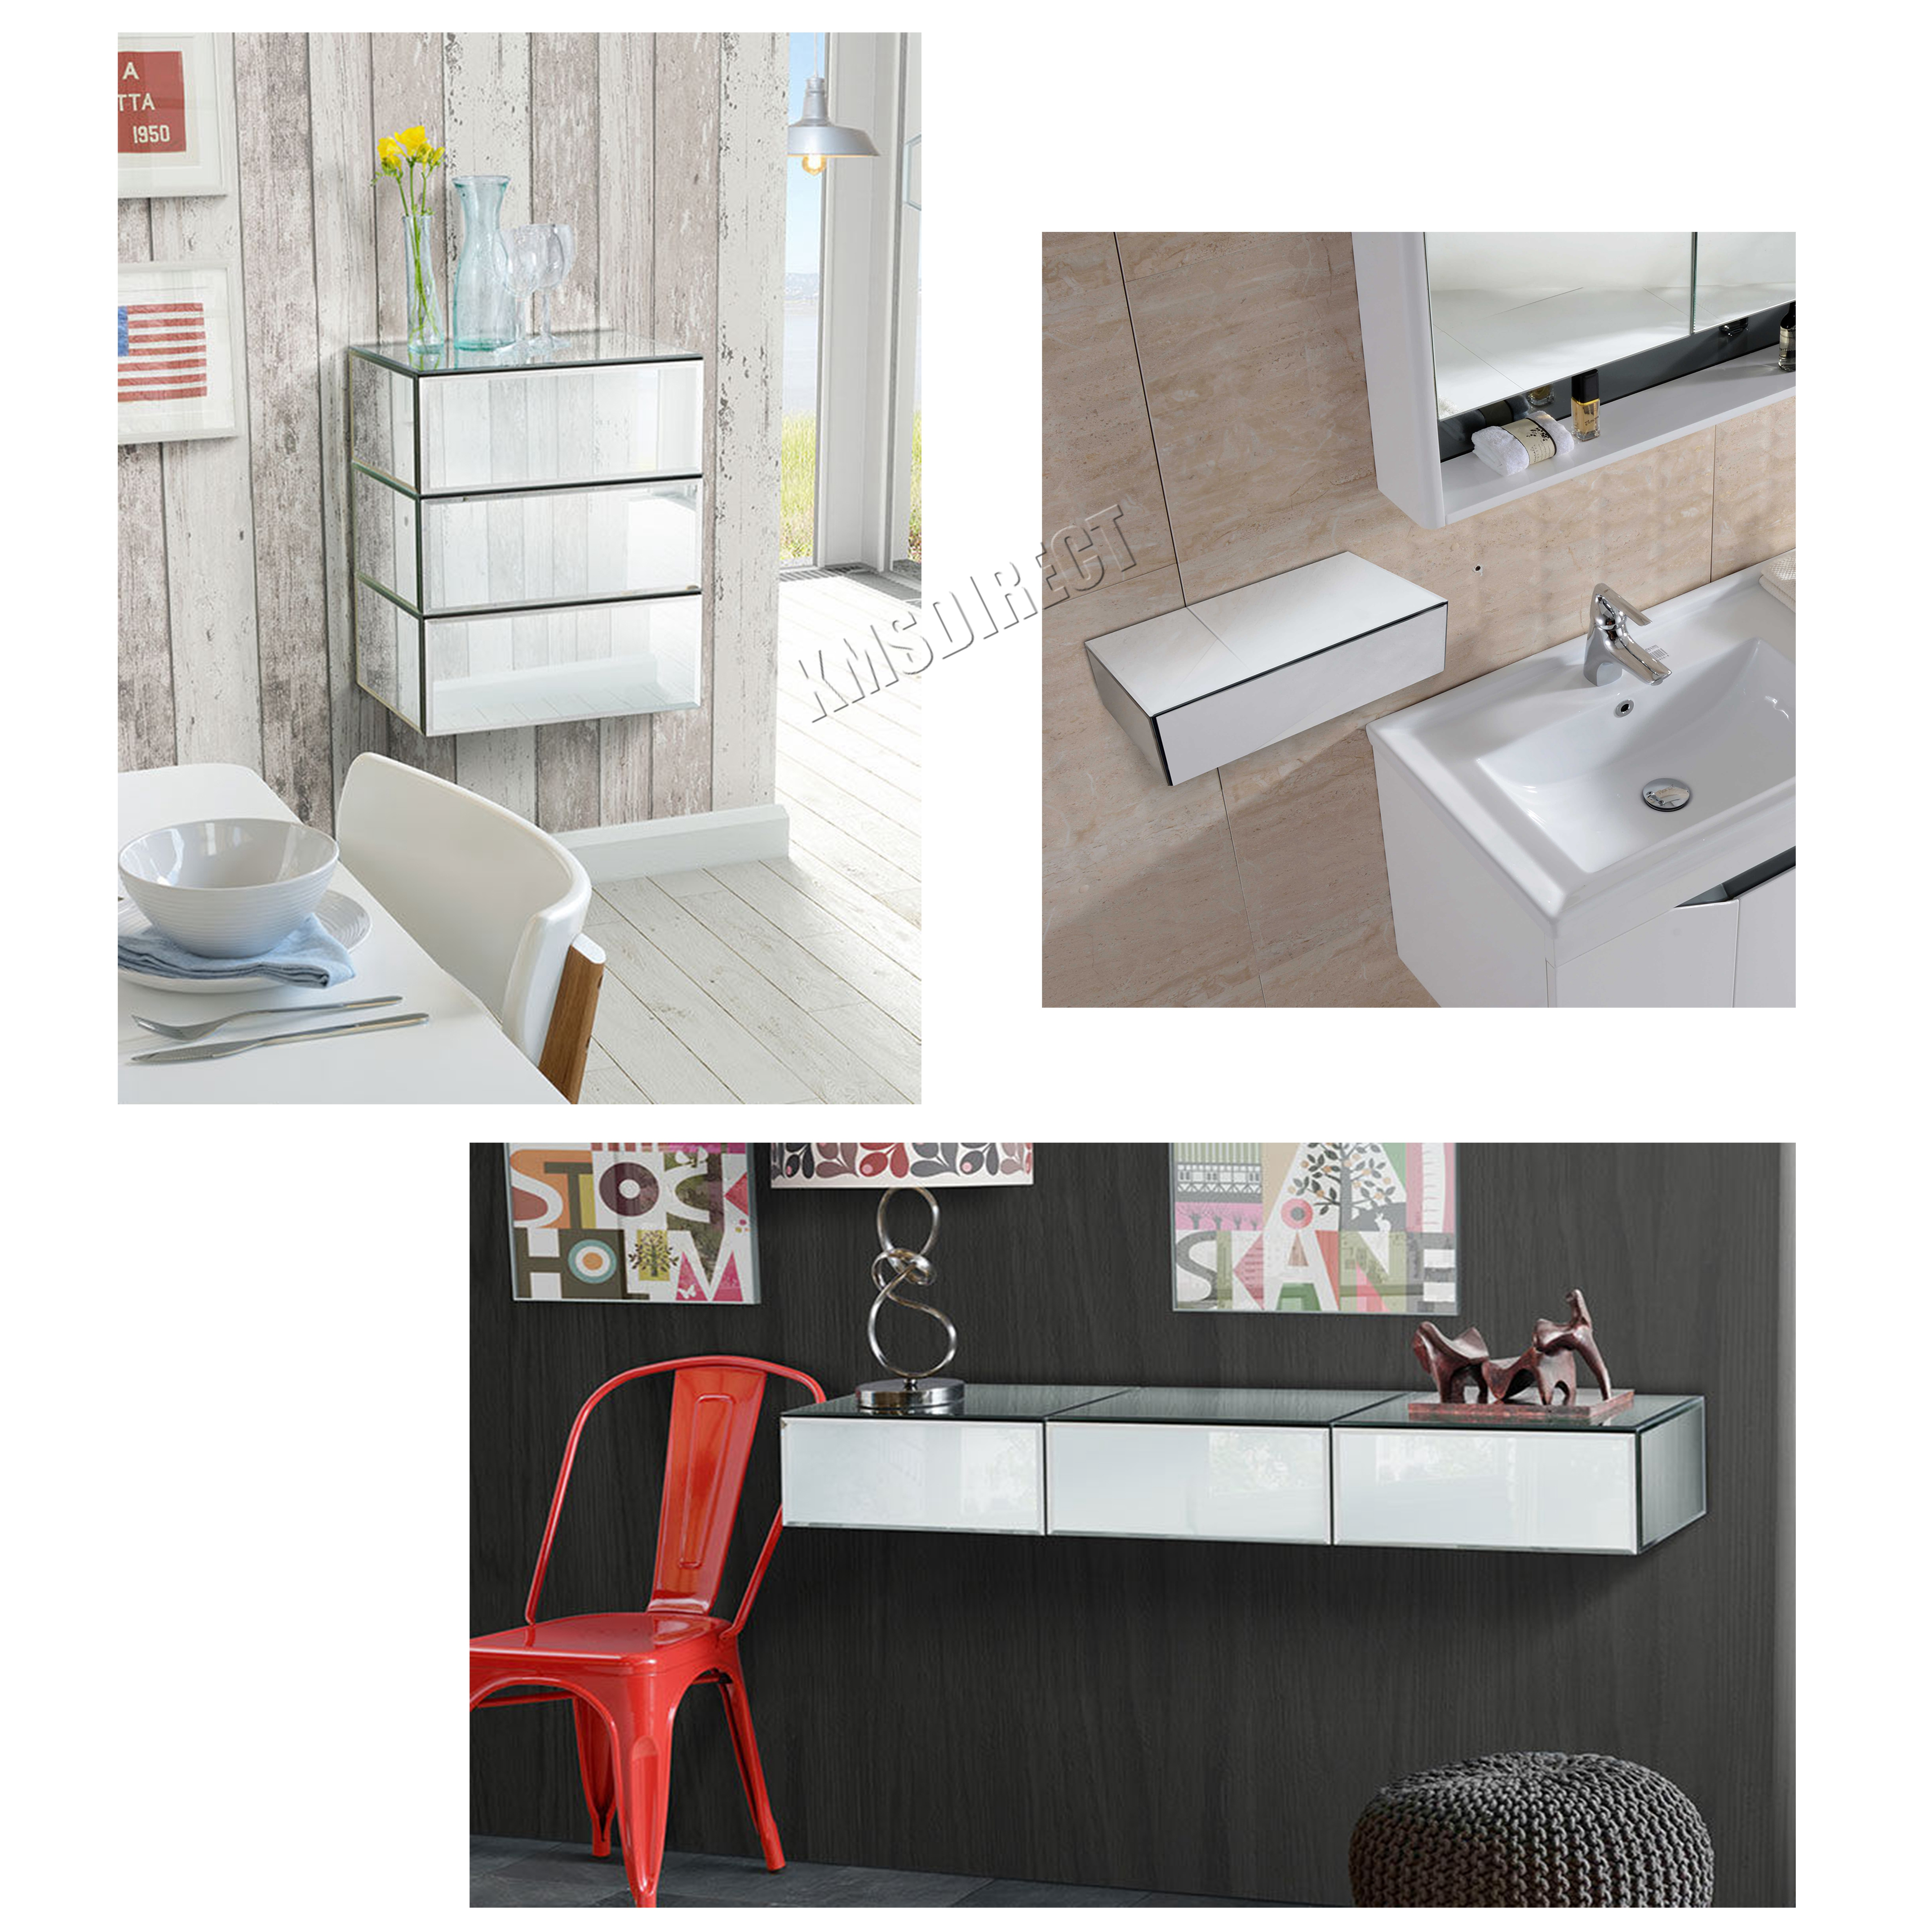 Sentinel Westwood Mirrored Furniture Gl Floating Bedside Cabinet Table Console Shelf